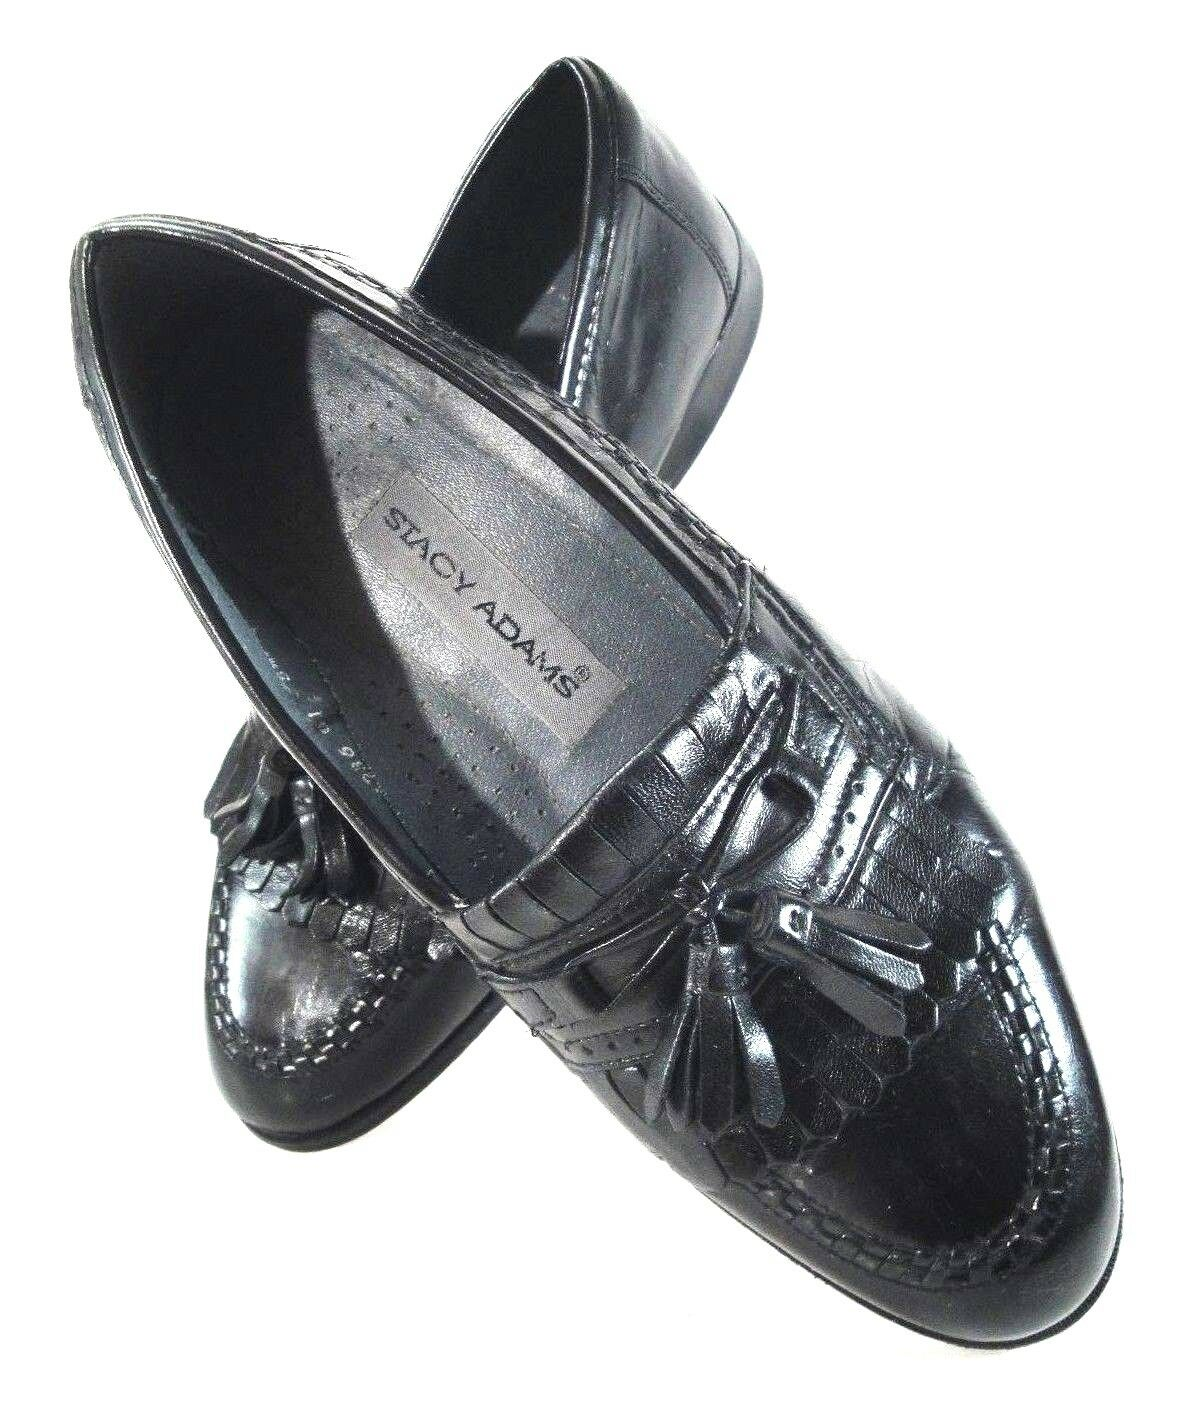 STACY ADAMS Black Leather Loafer Kilt with Tassels and Fringed Kilt Loafer Men's Size 8.5 M a40ab4